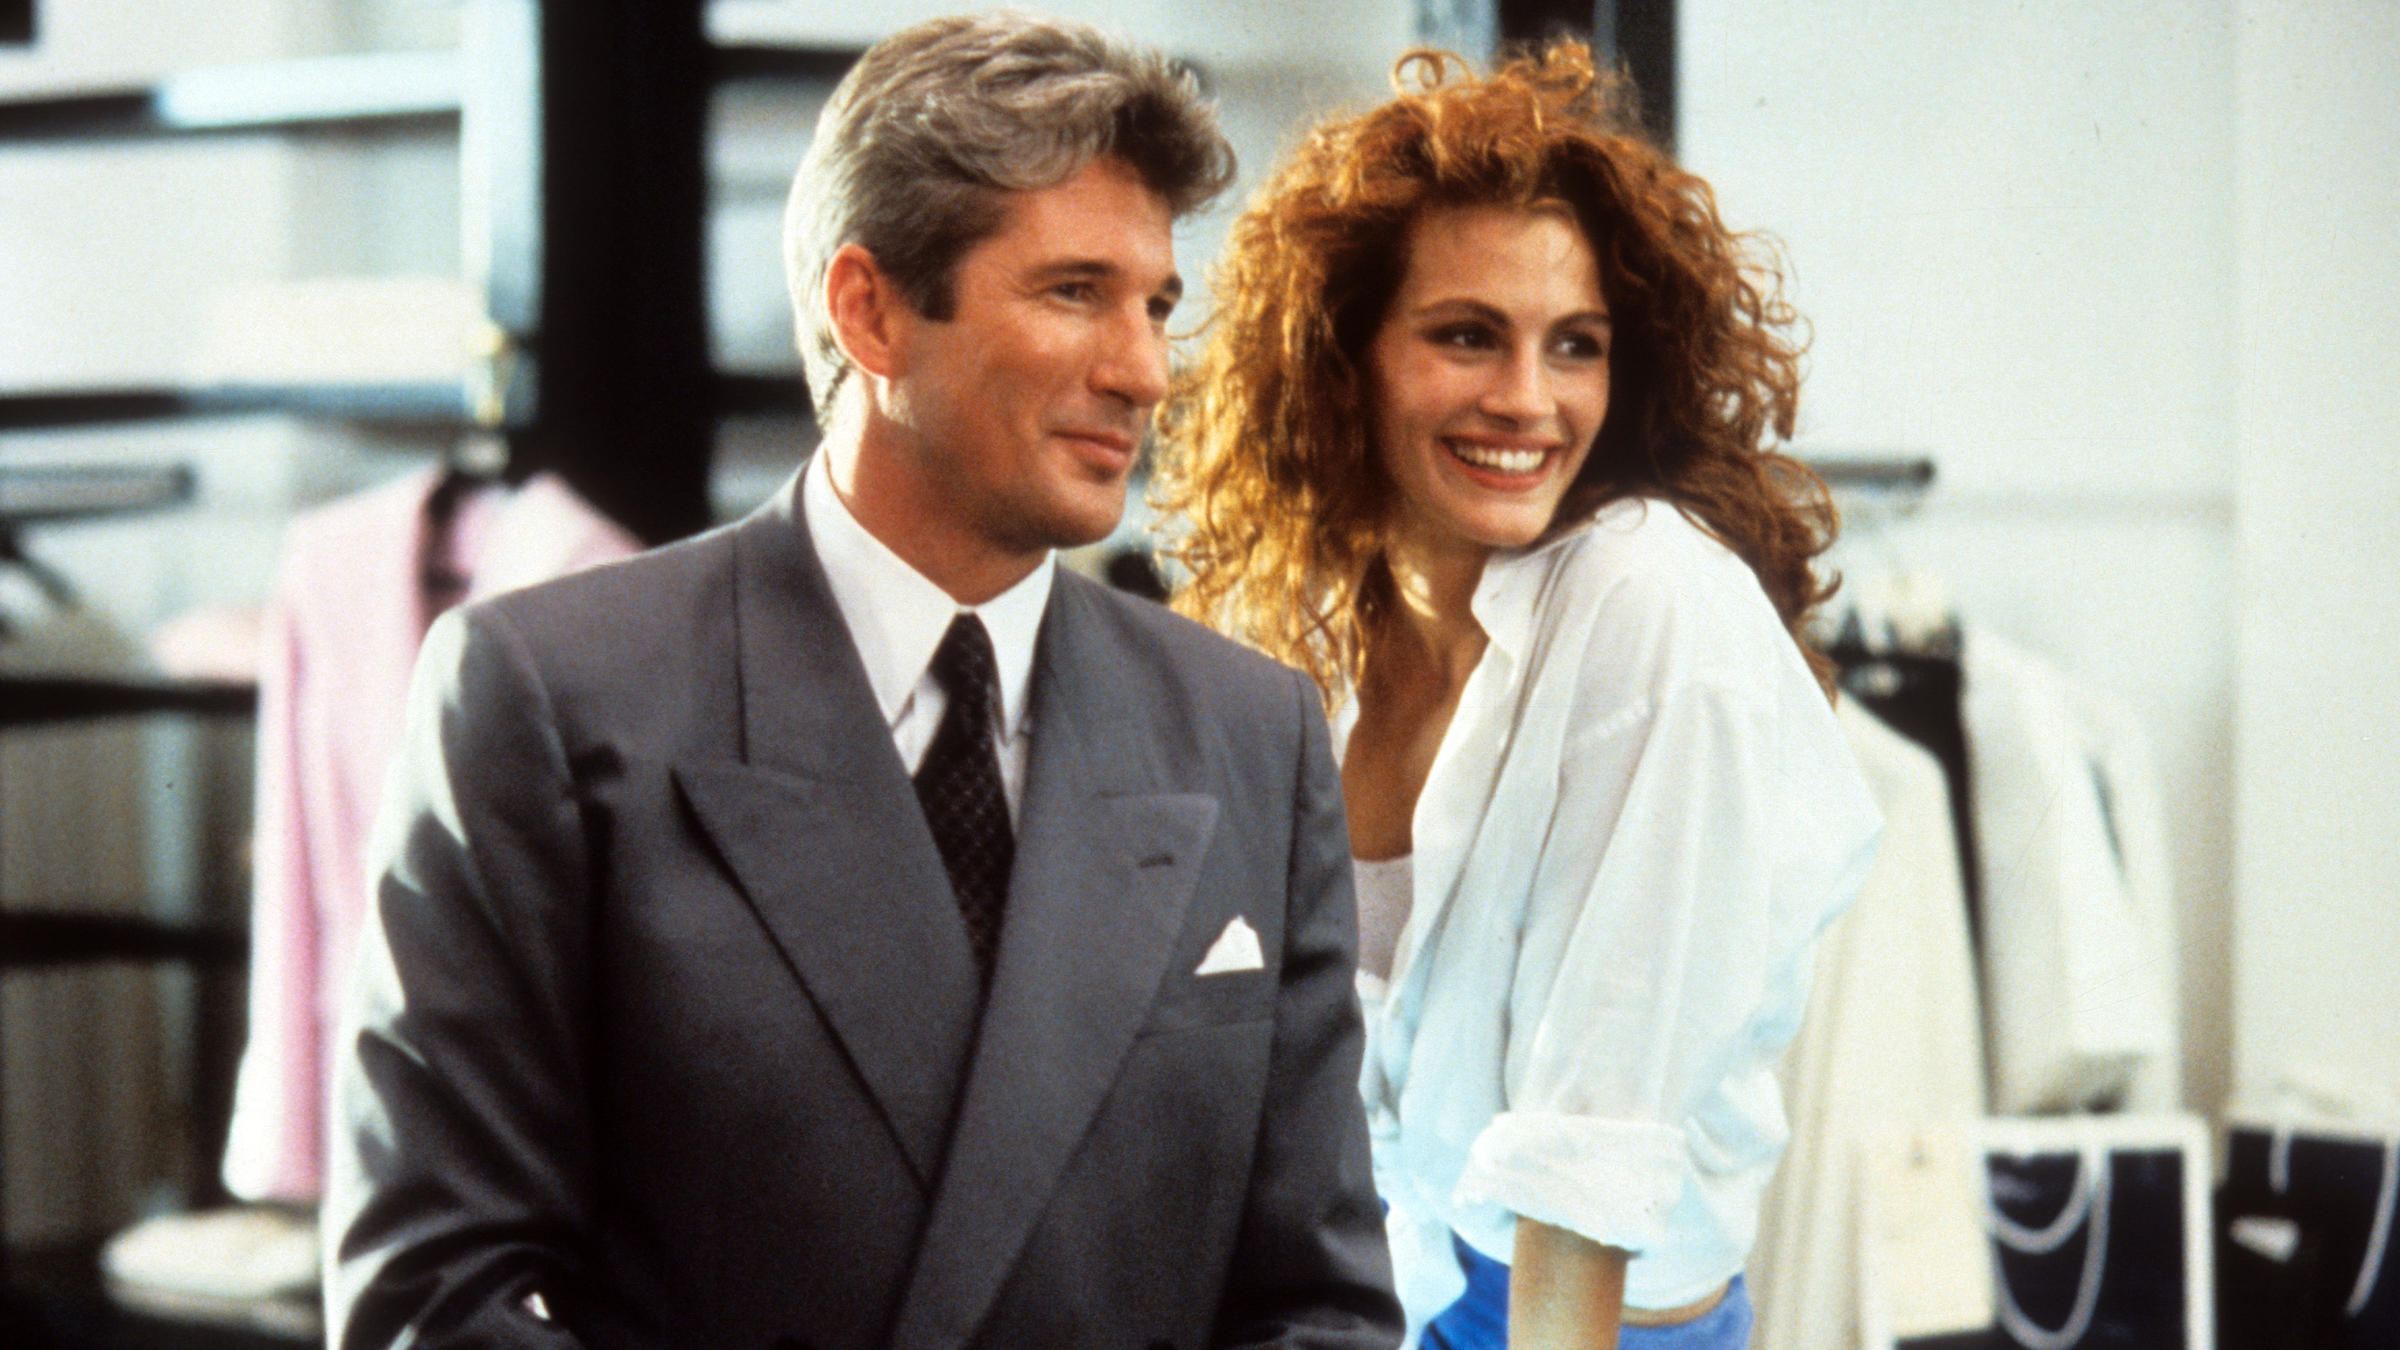 Prepare Your Wallets: A 'Pretty Woman' Musical Is Coming to Broadway